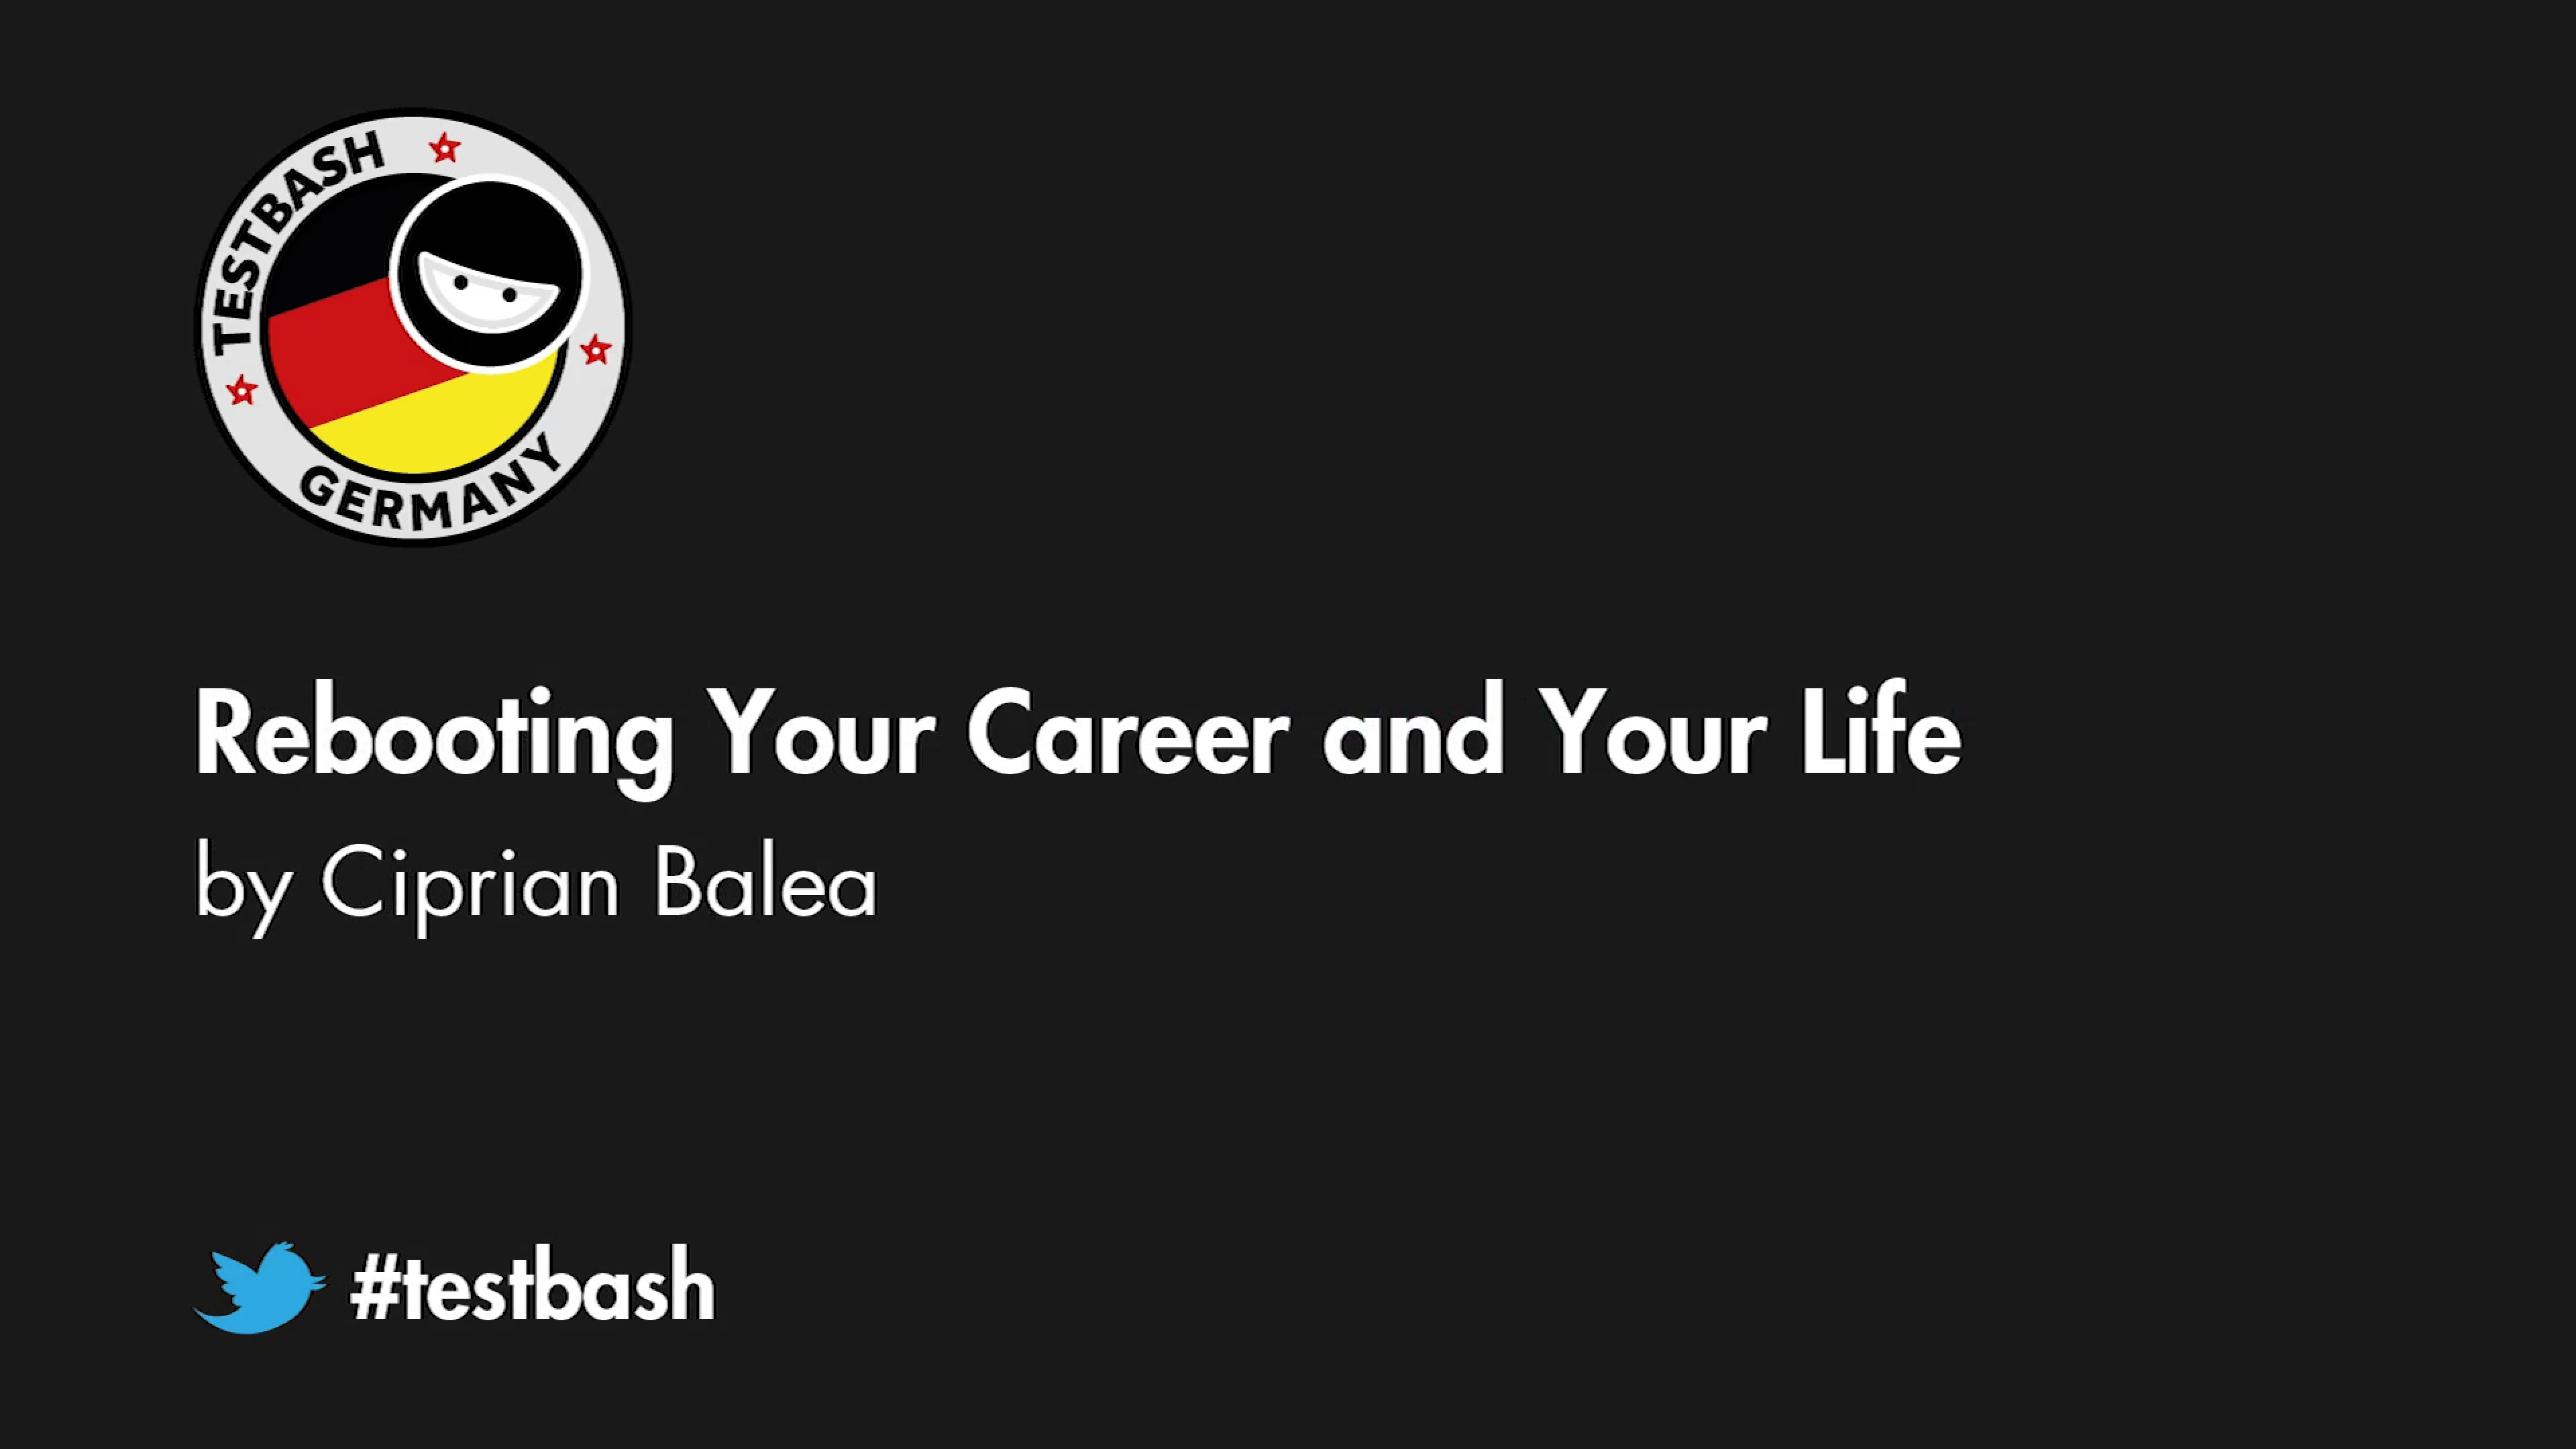 Rebooting Your Career and Your Life - Ciprian Balea